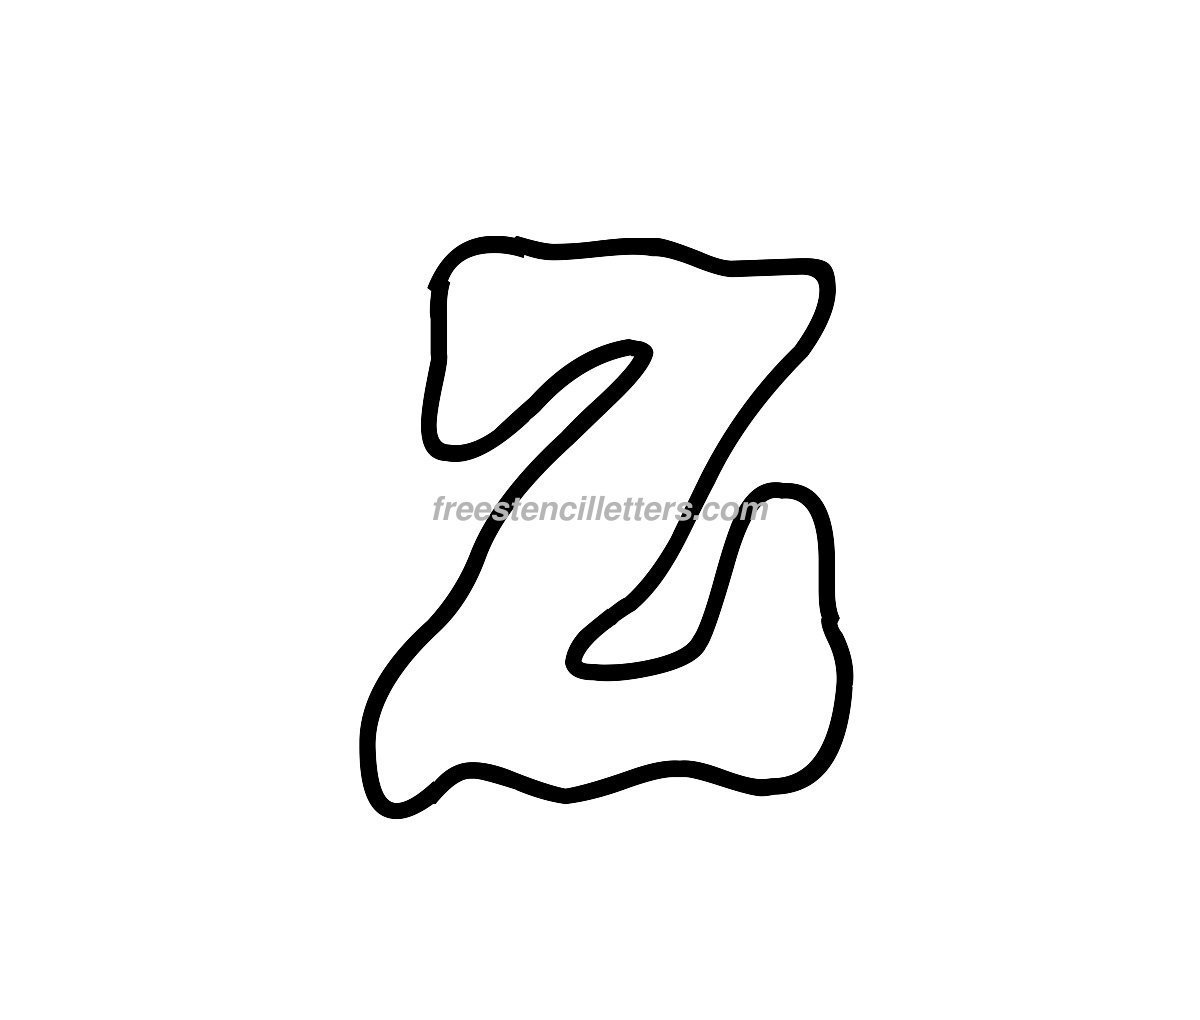 ... Letters To Print And Cut Out Download print z letter stencil to print